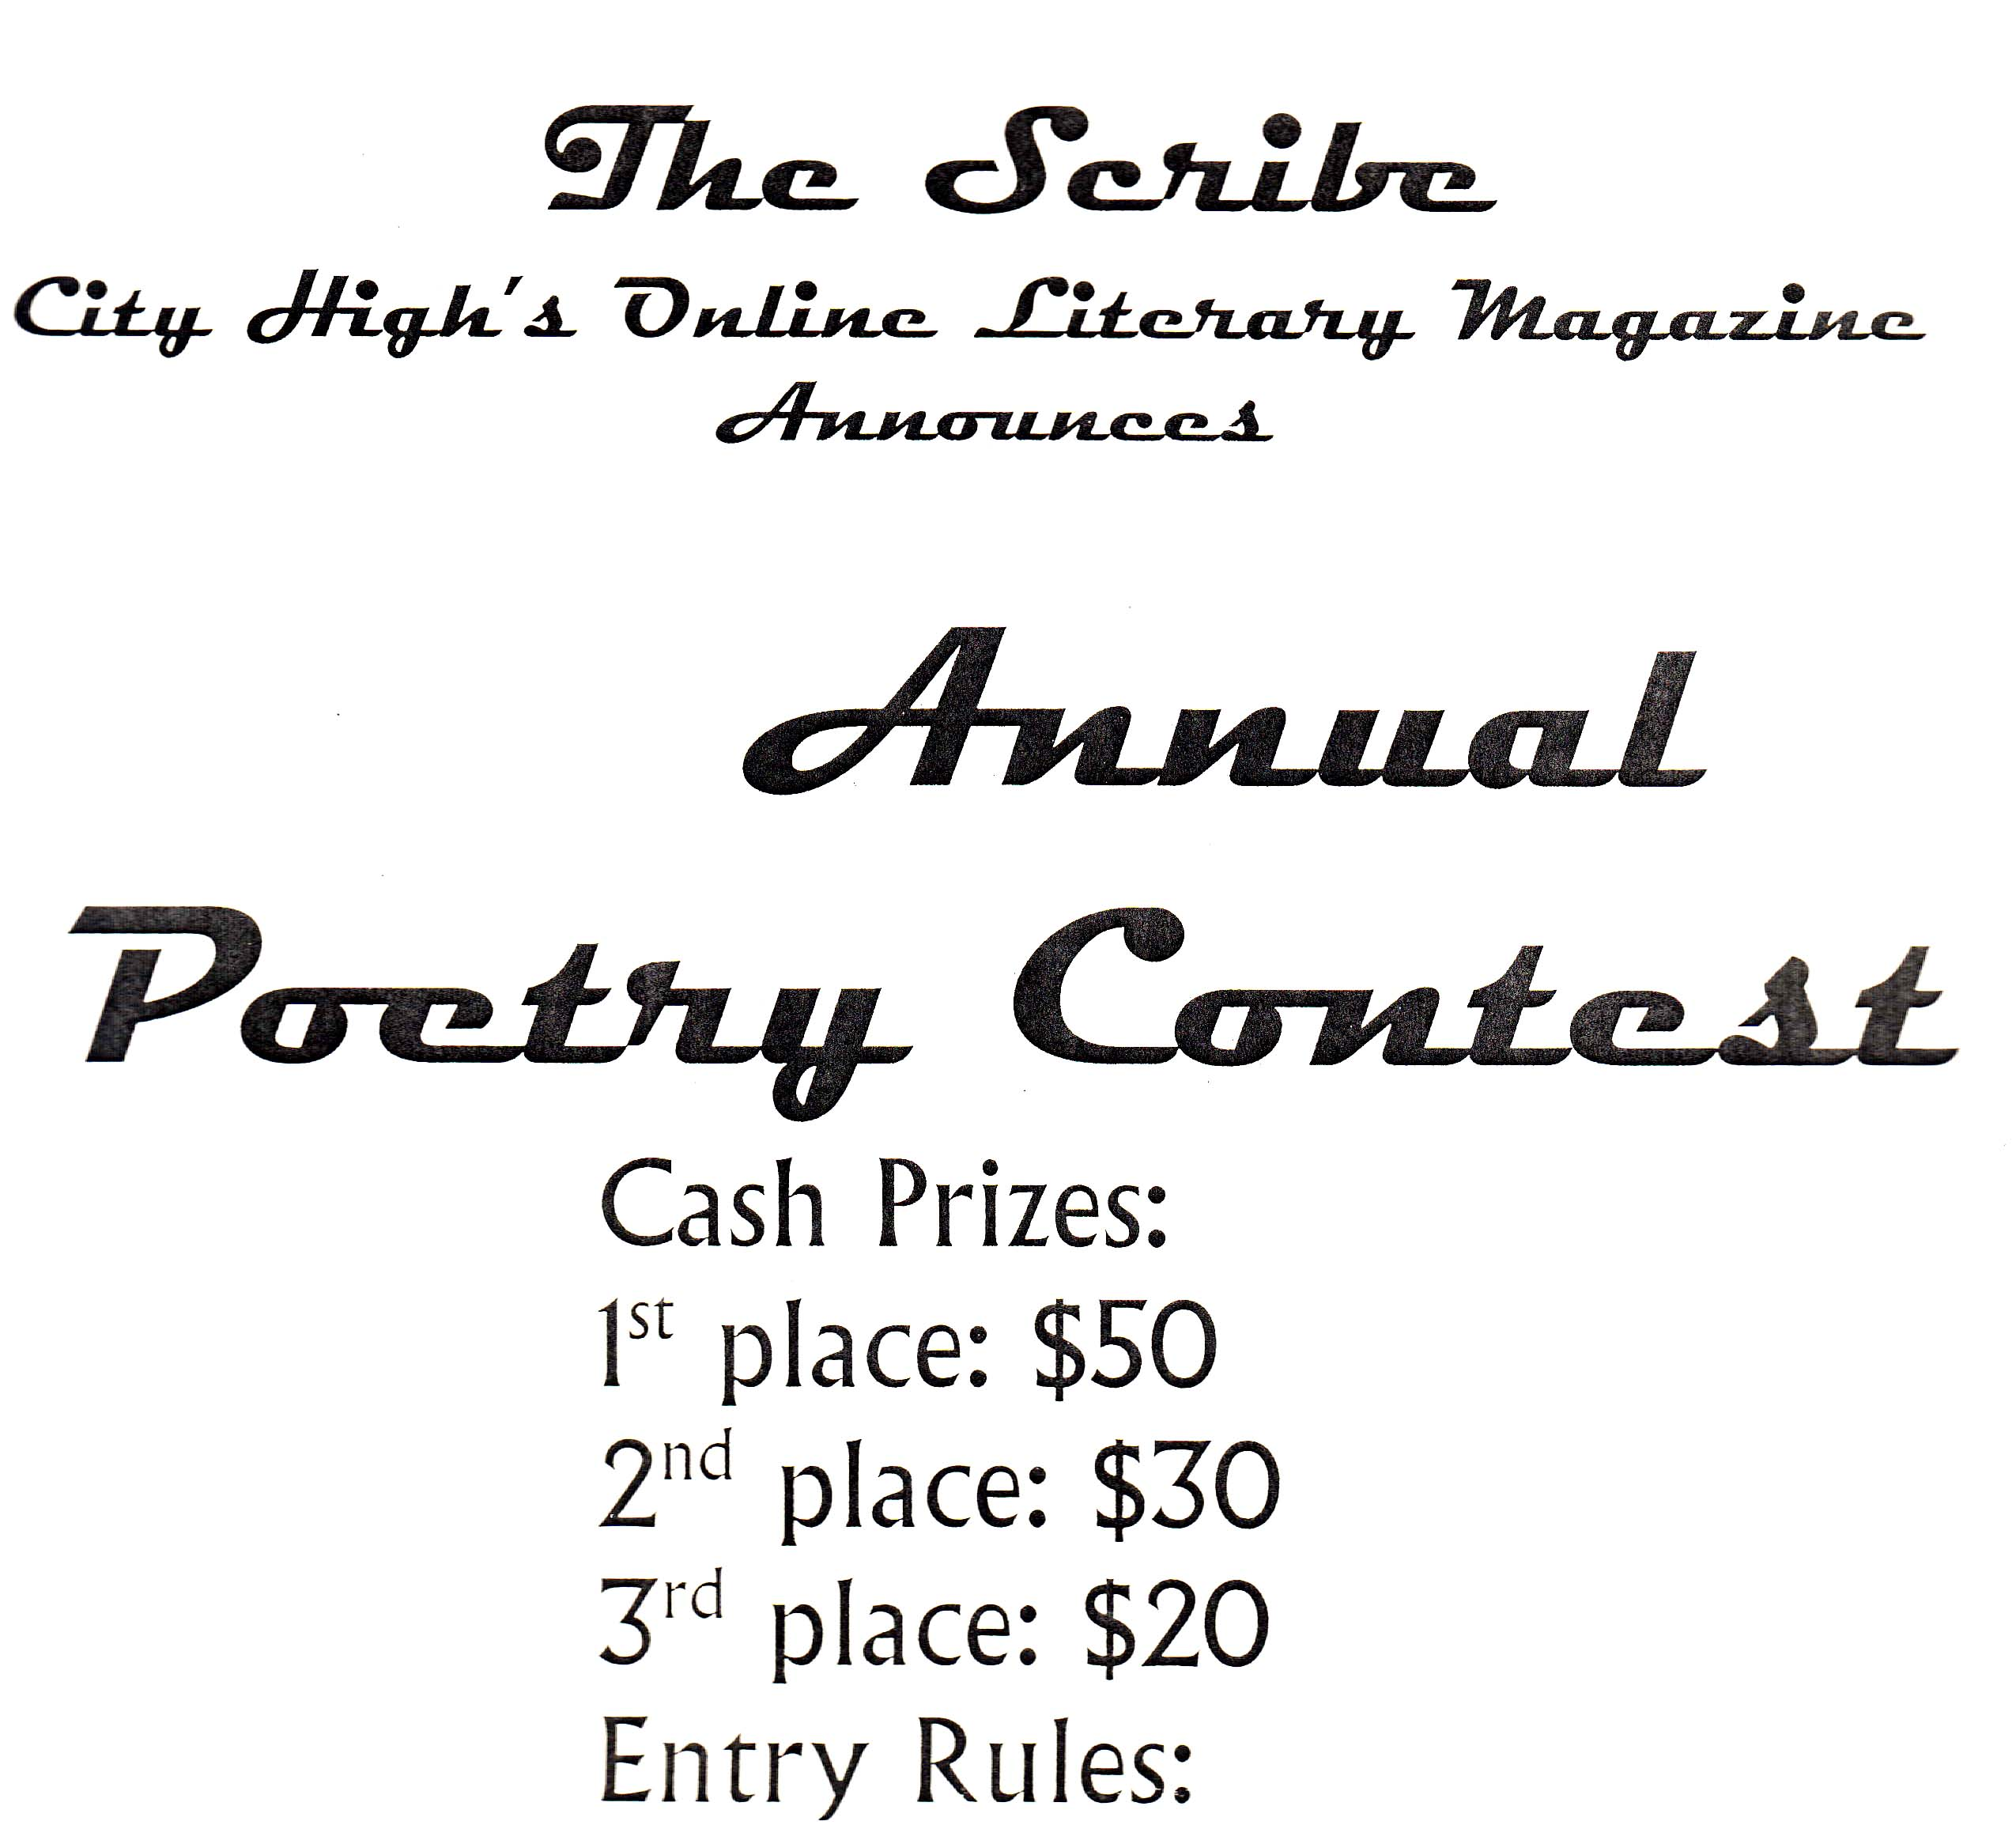 Submit poetry all throughout month to win cash prizes.